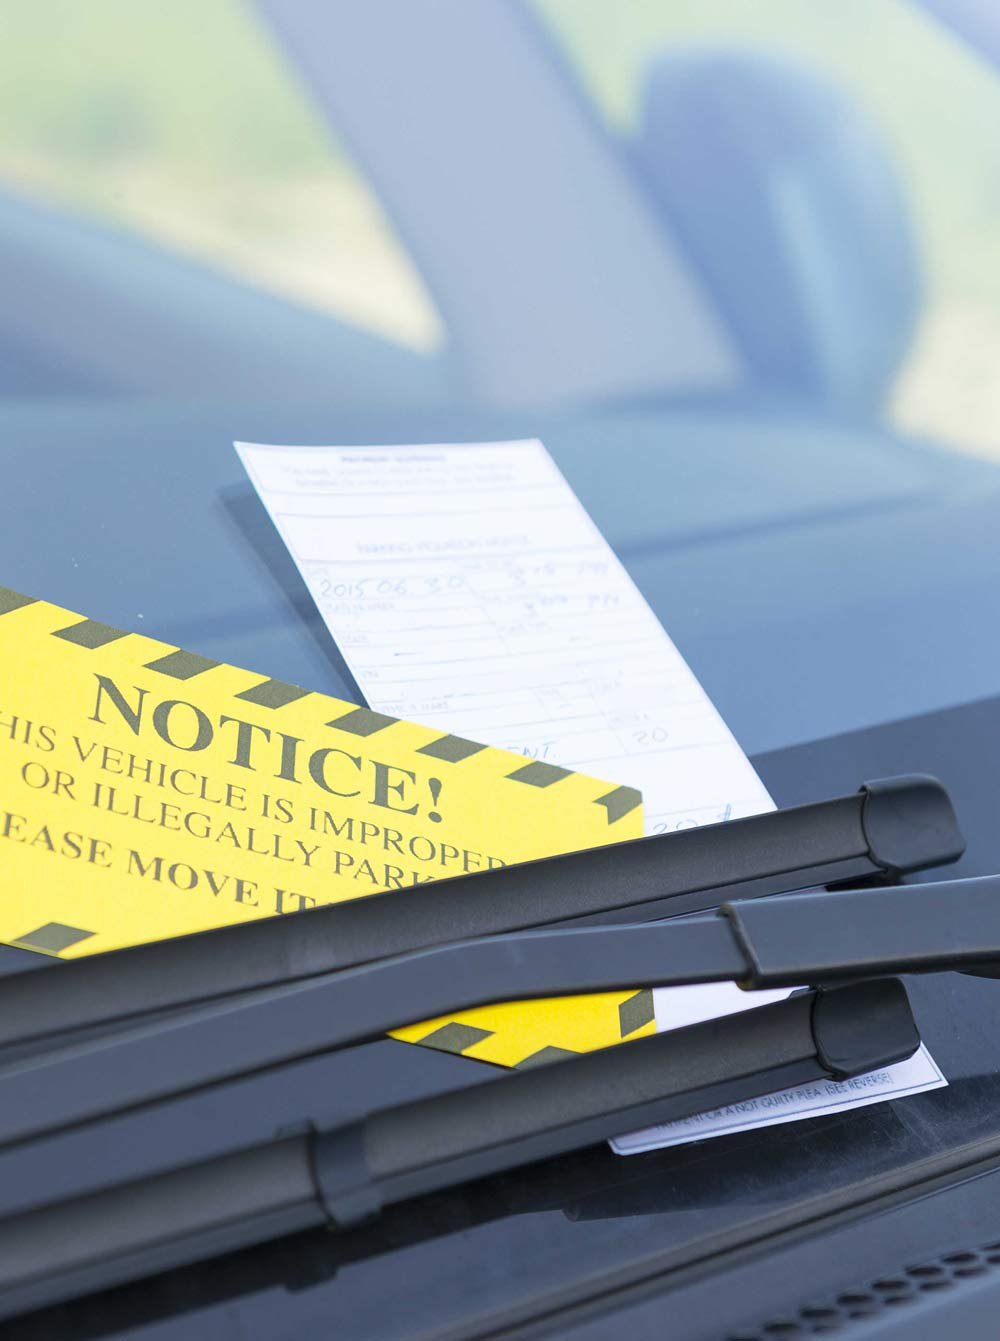 Traffic Tickets and Other Minor Offenses